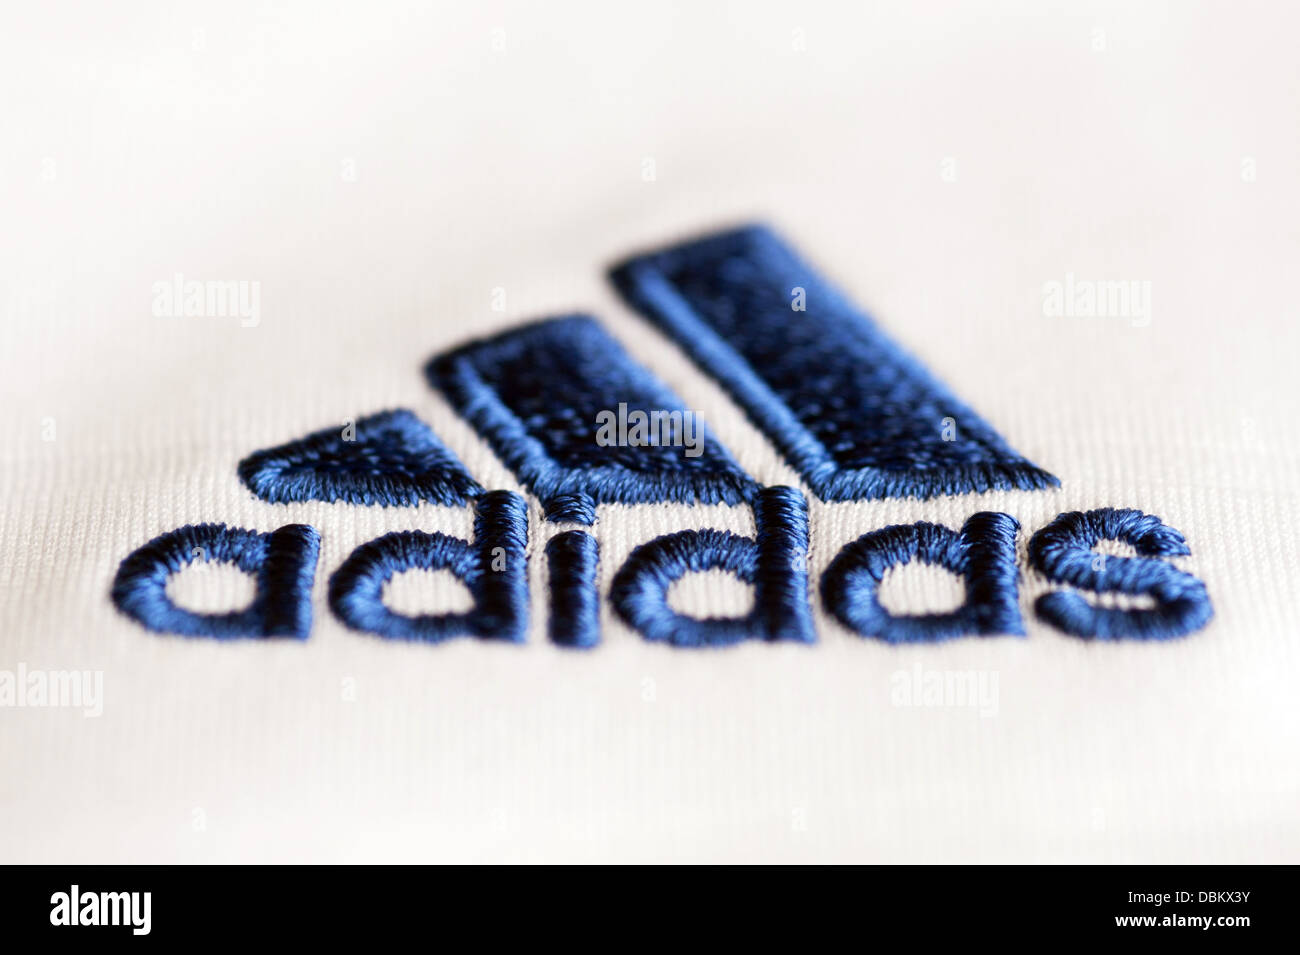 Adidas Sign - Stock Image